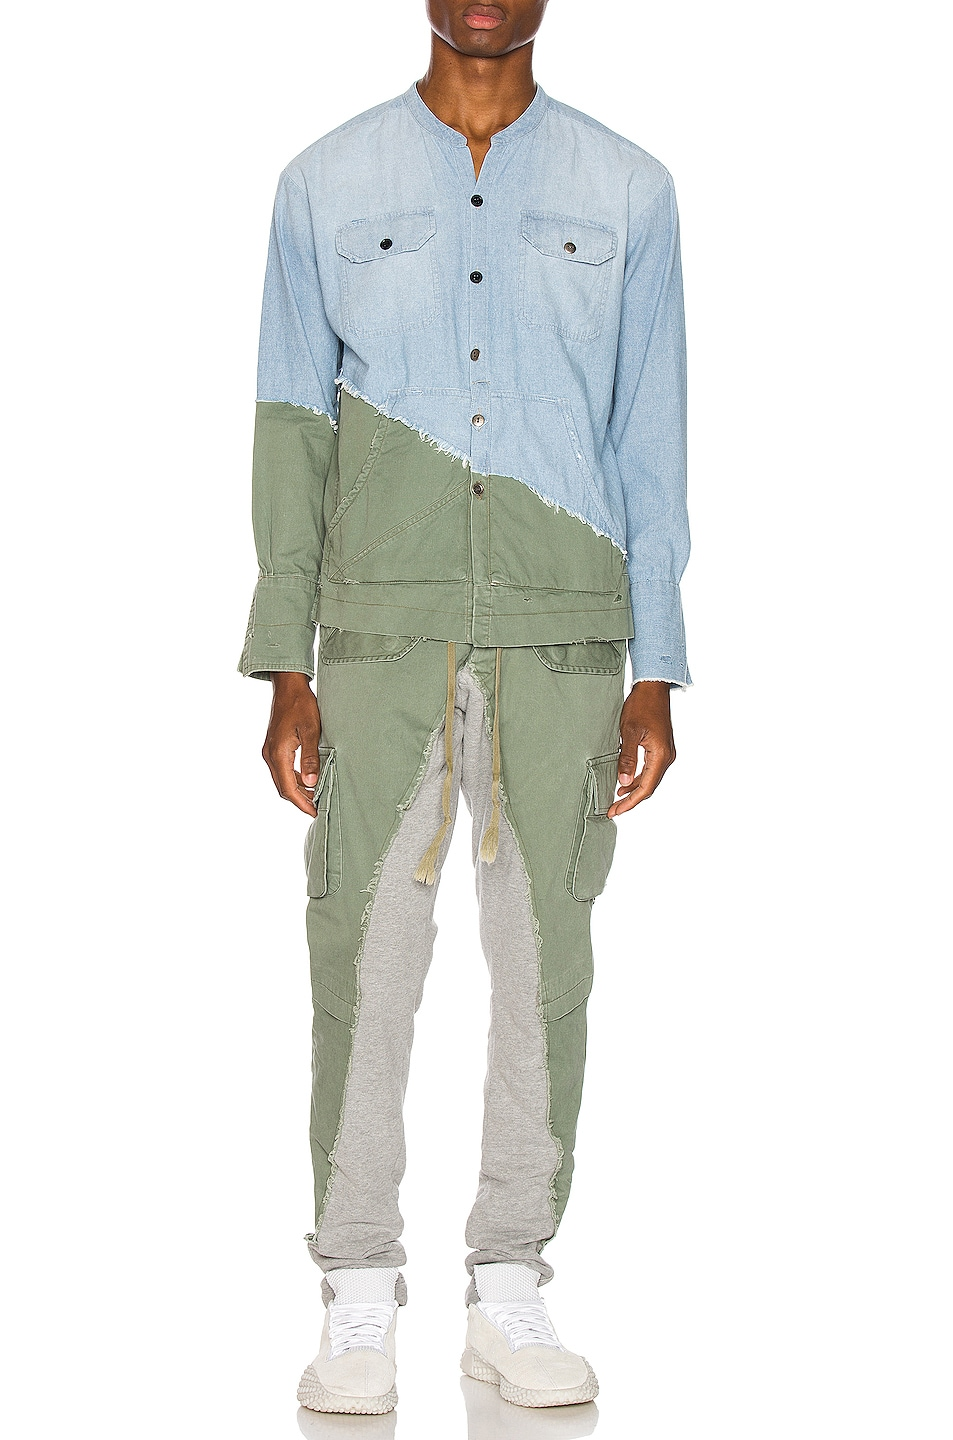 Image 5 of Greg Lauren Army Studio Shirt in Light Blue & Army